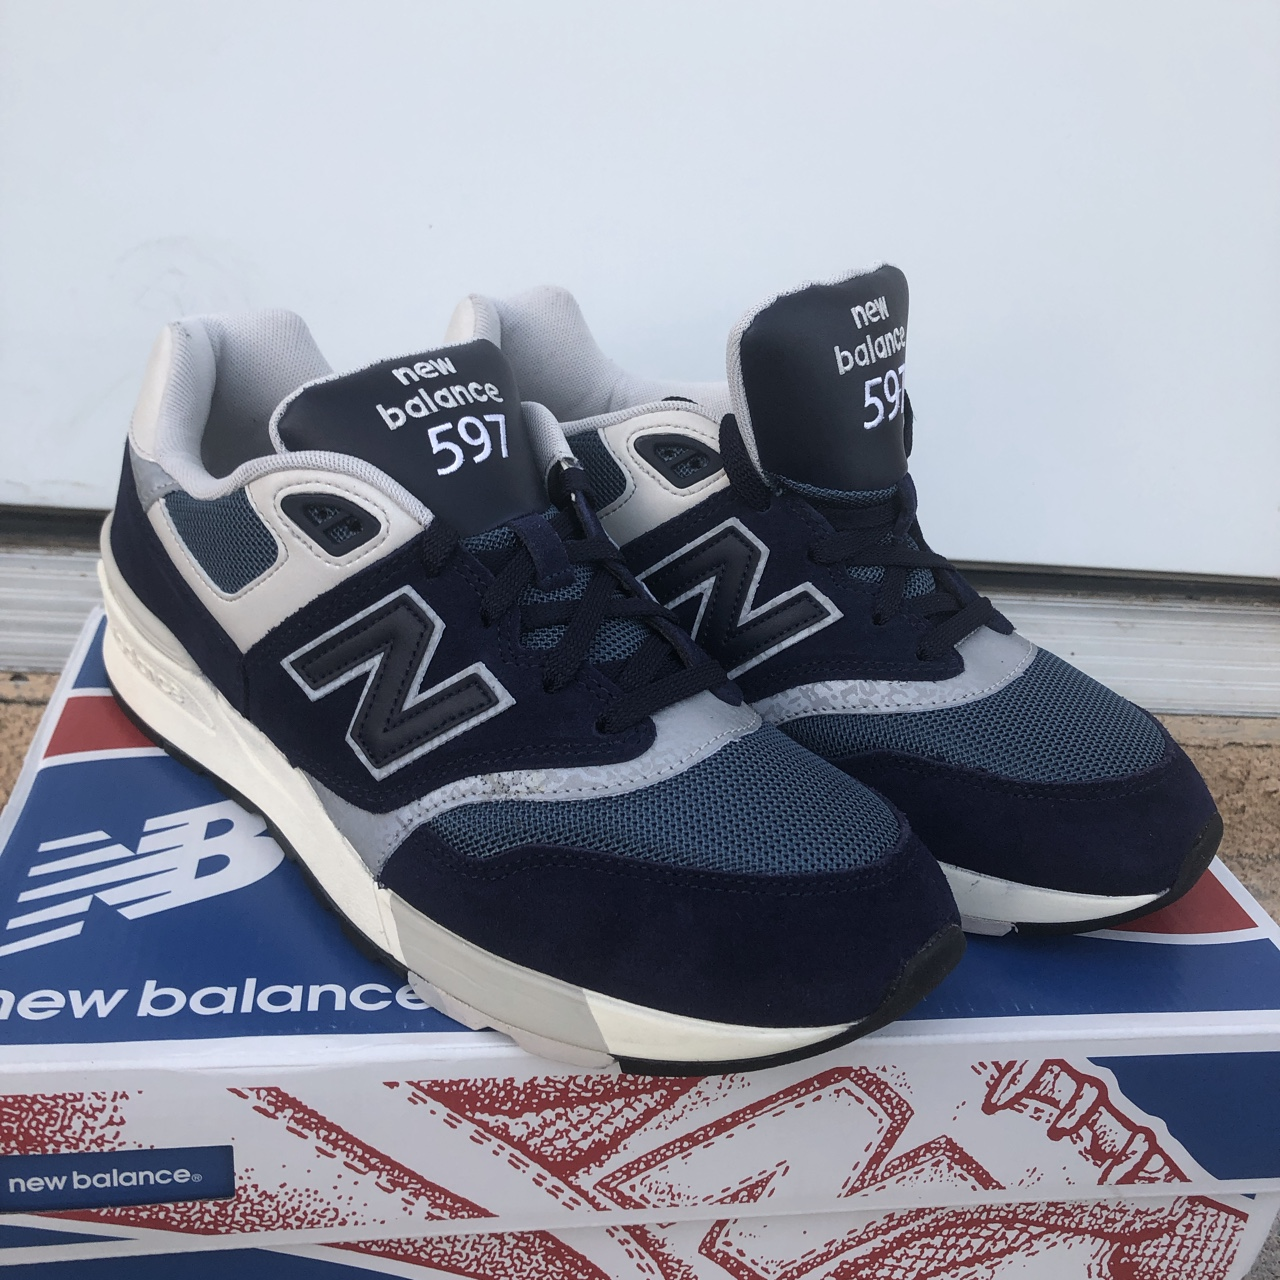 huge selection of c29b1 4c0a0 New Balance 597 is a classic made modern with suede ...